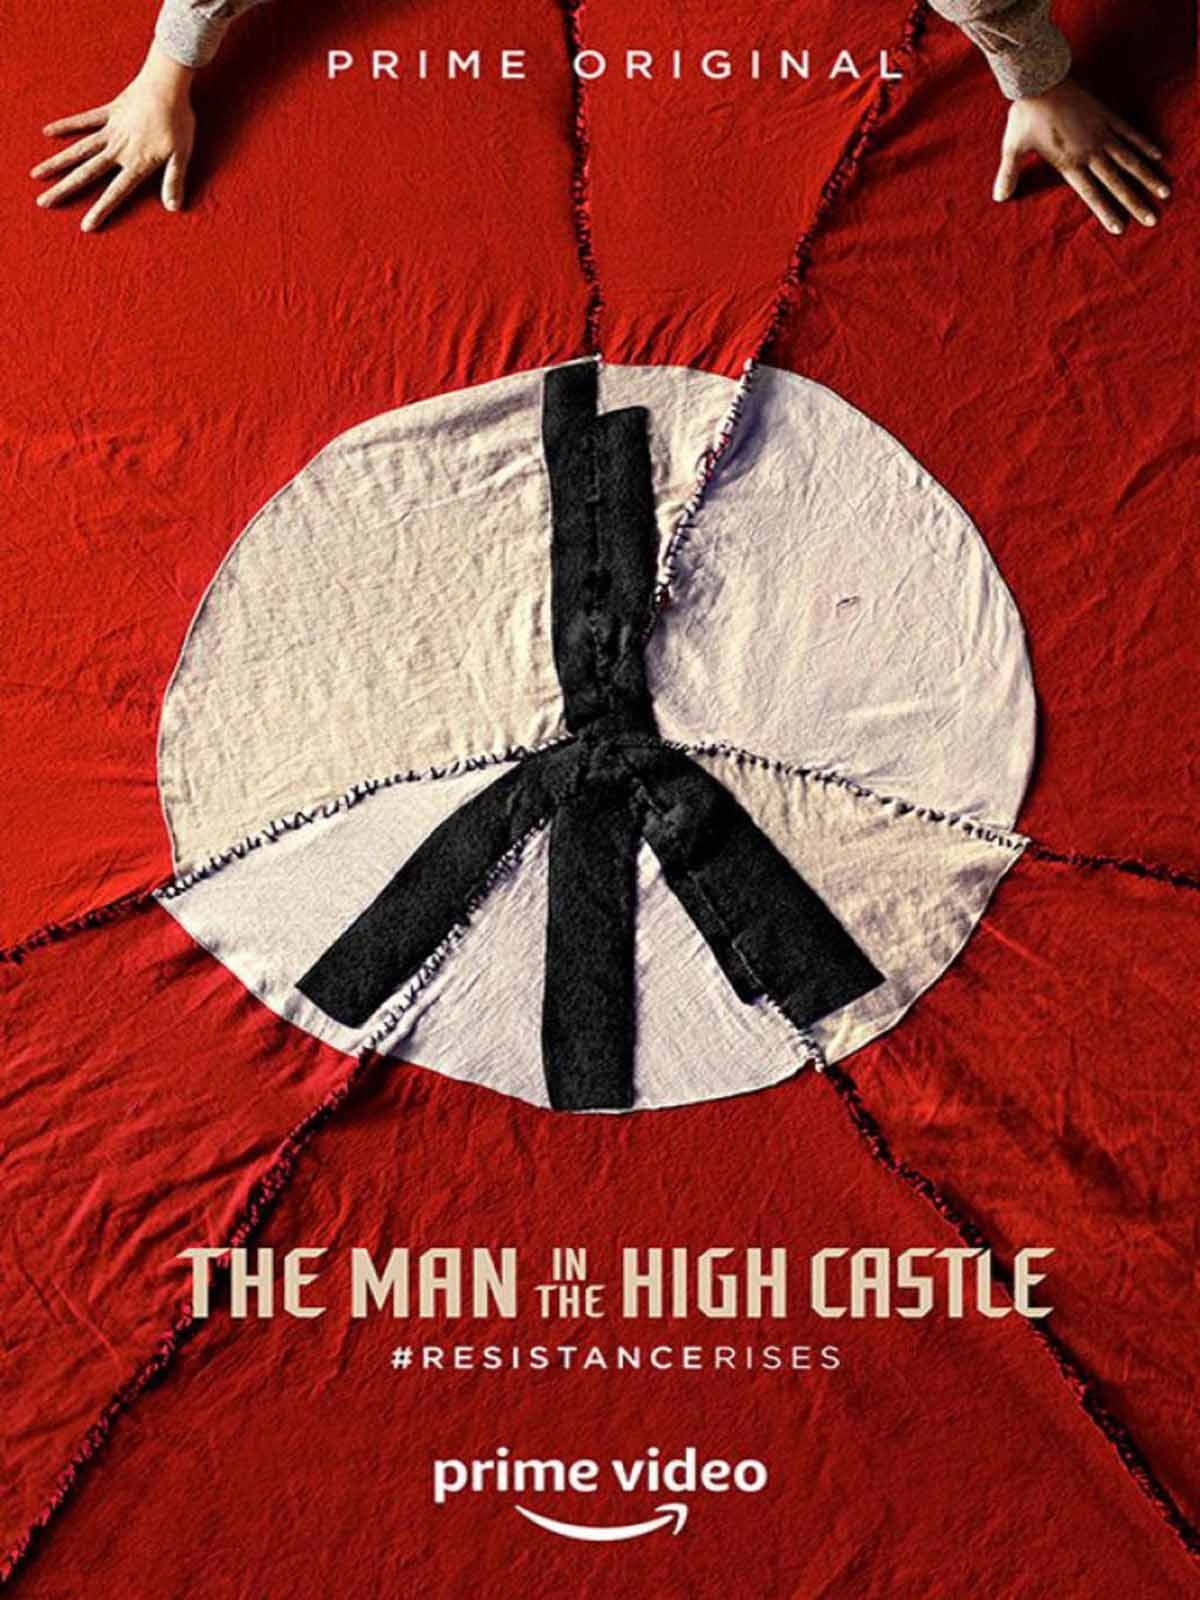 43 - The Man In the High Castle